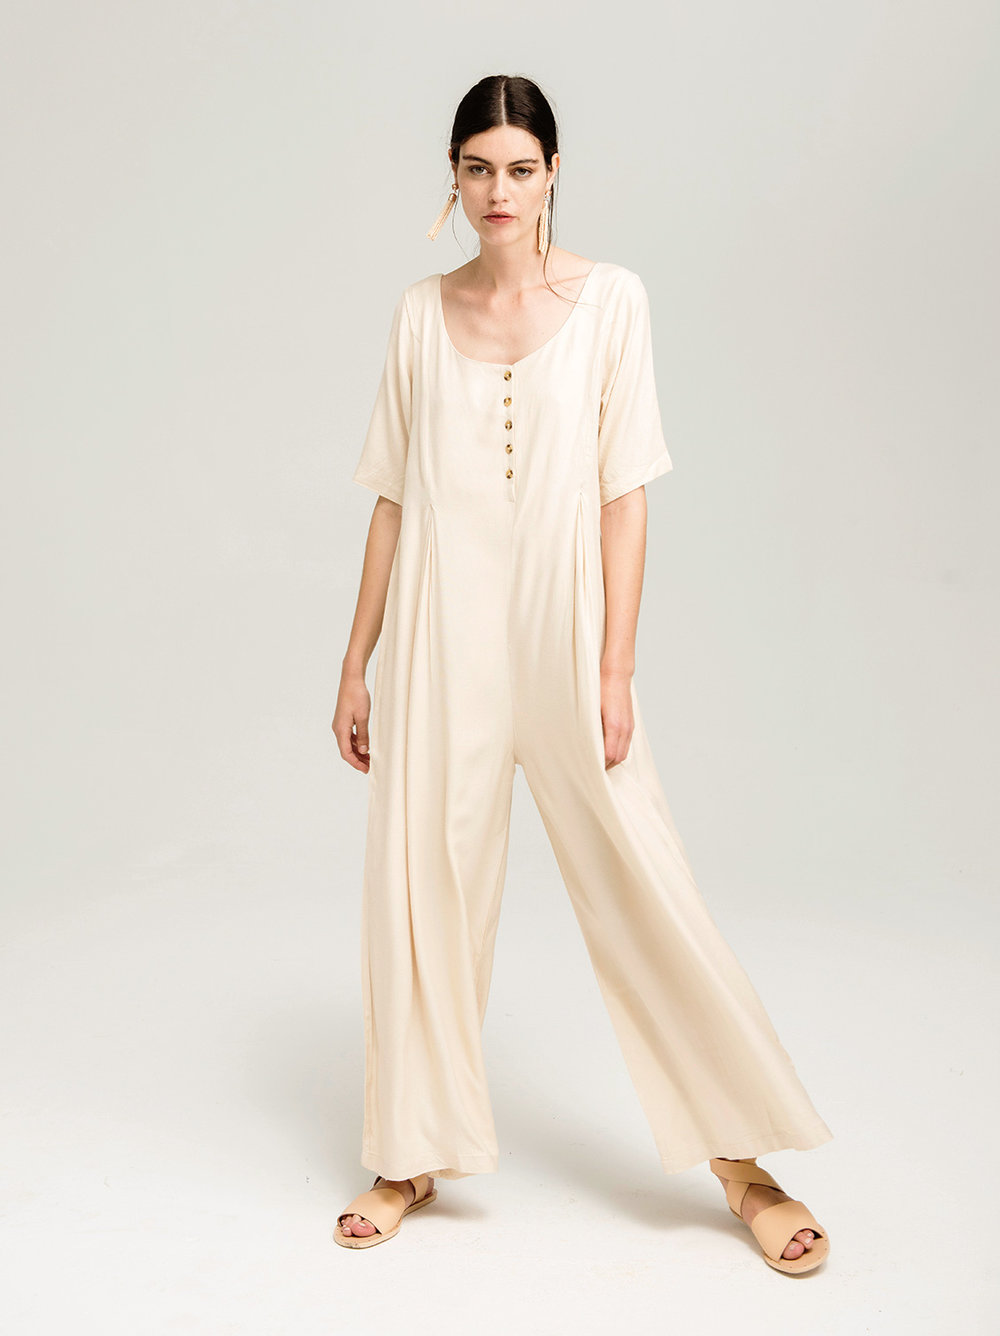 Patti-Pantsuit-Cream.jpg